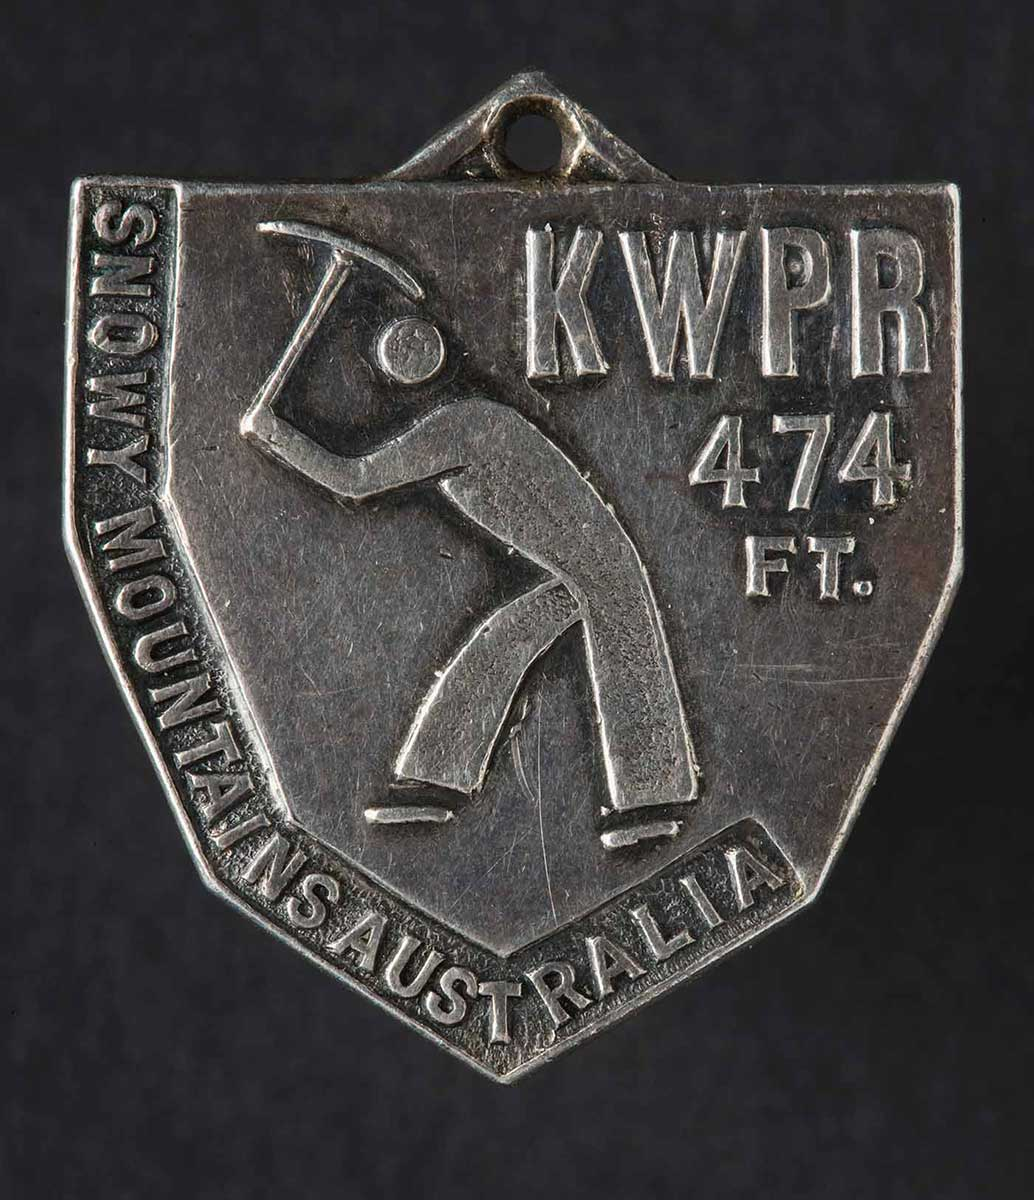 An image of a worker holding a tool above his head and in a digging stance is in the centre of the medal. 'KWPR 474 FT' is written in the top right corner and 'Snowy Mountains Australia' is written down the left hand side. - click to view larger image